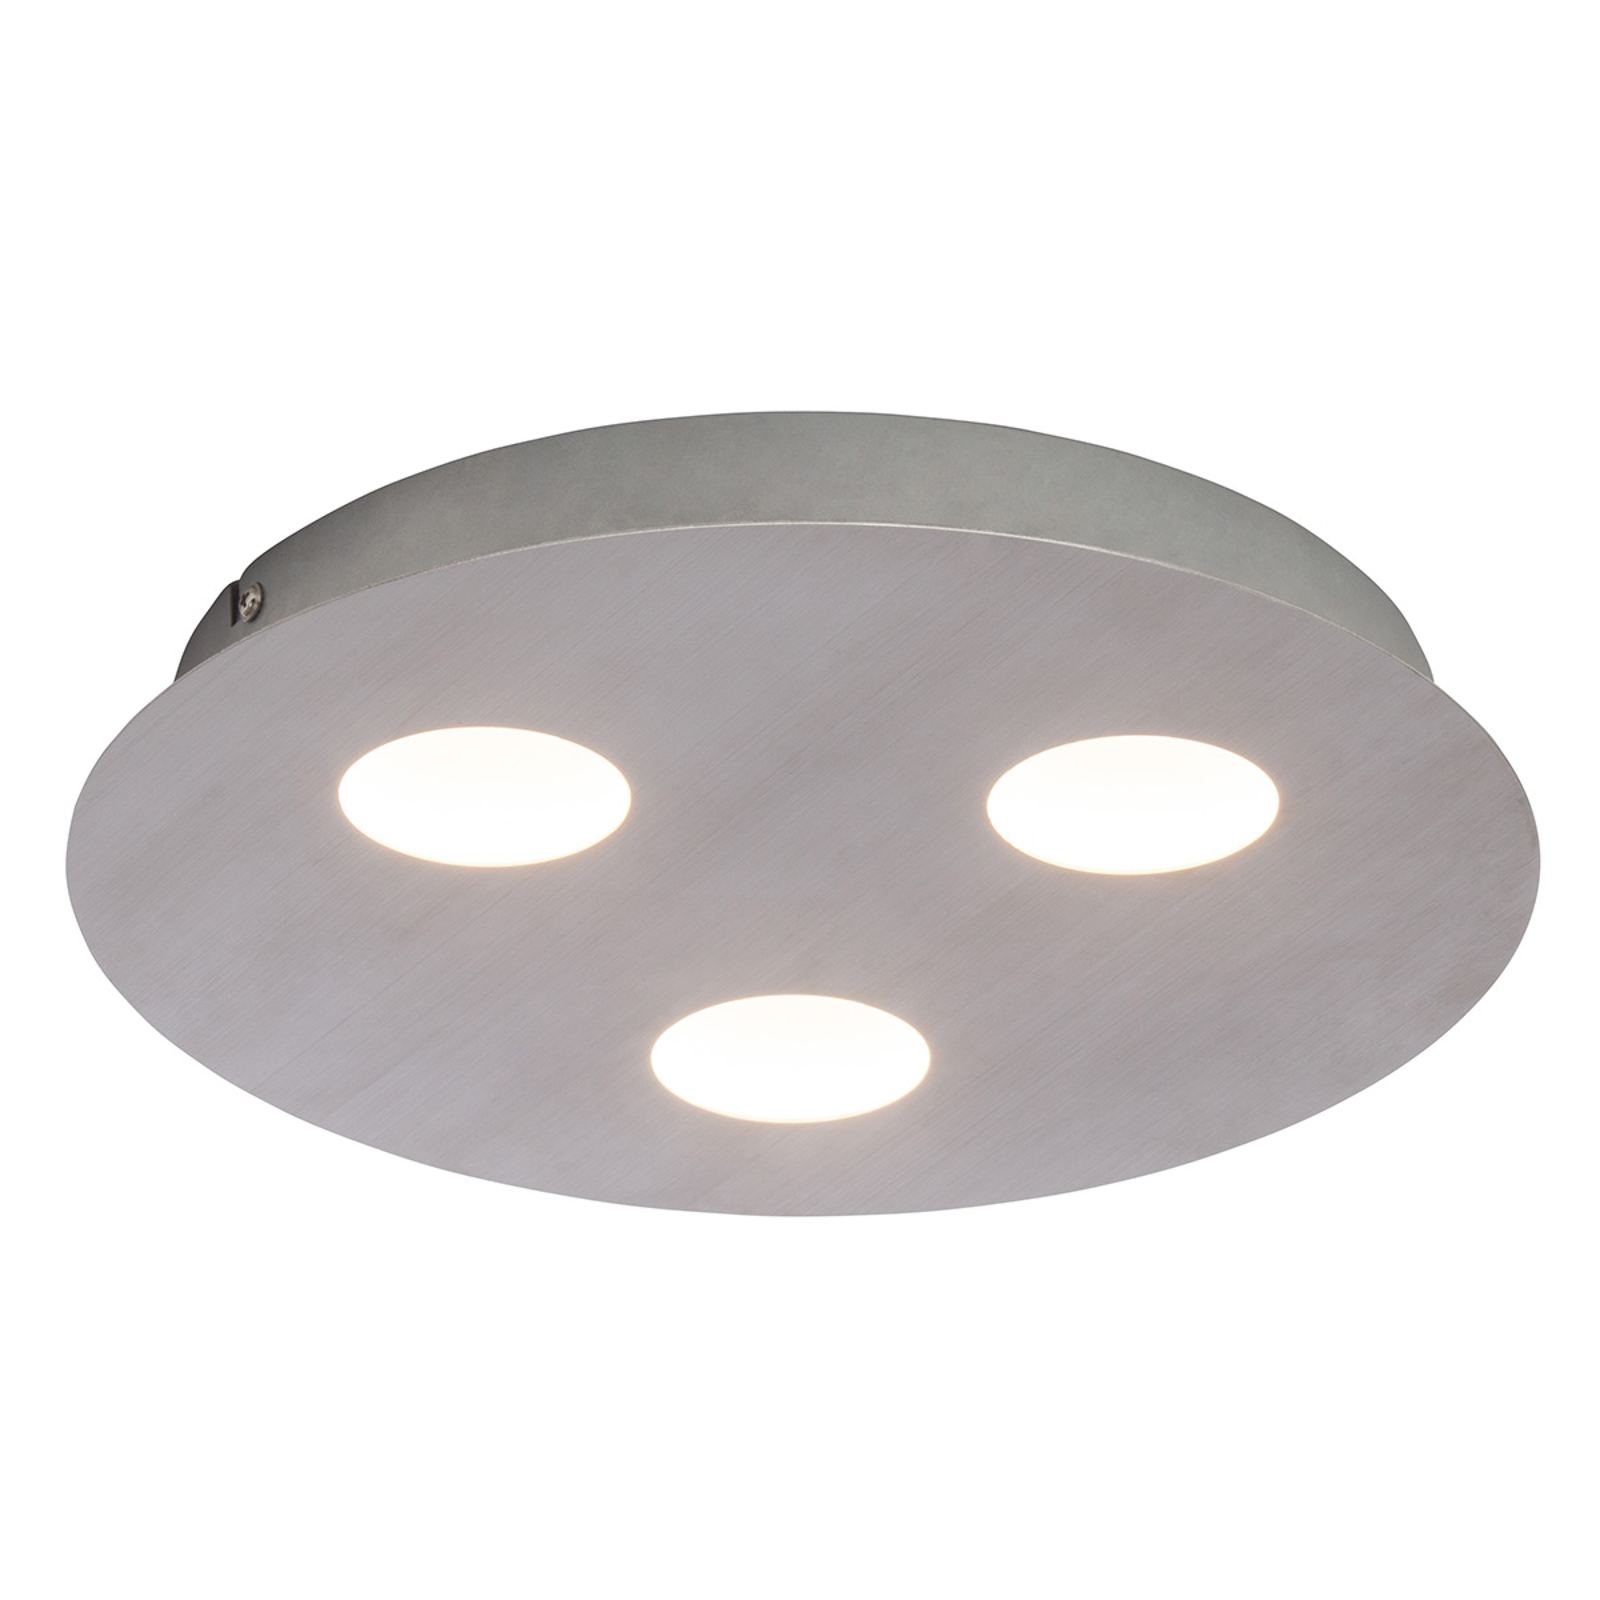 Formit - a round LED ceiling light by AEG_3057068_1